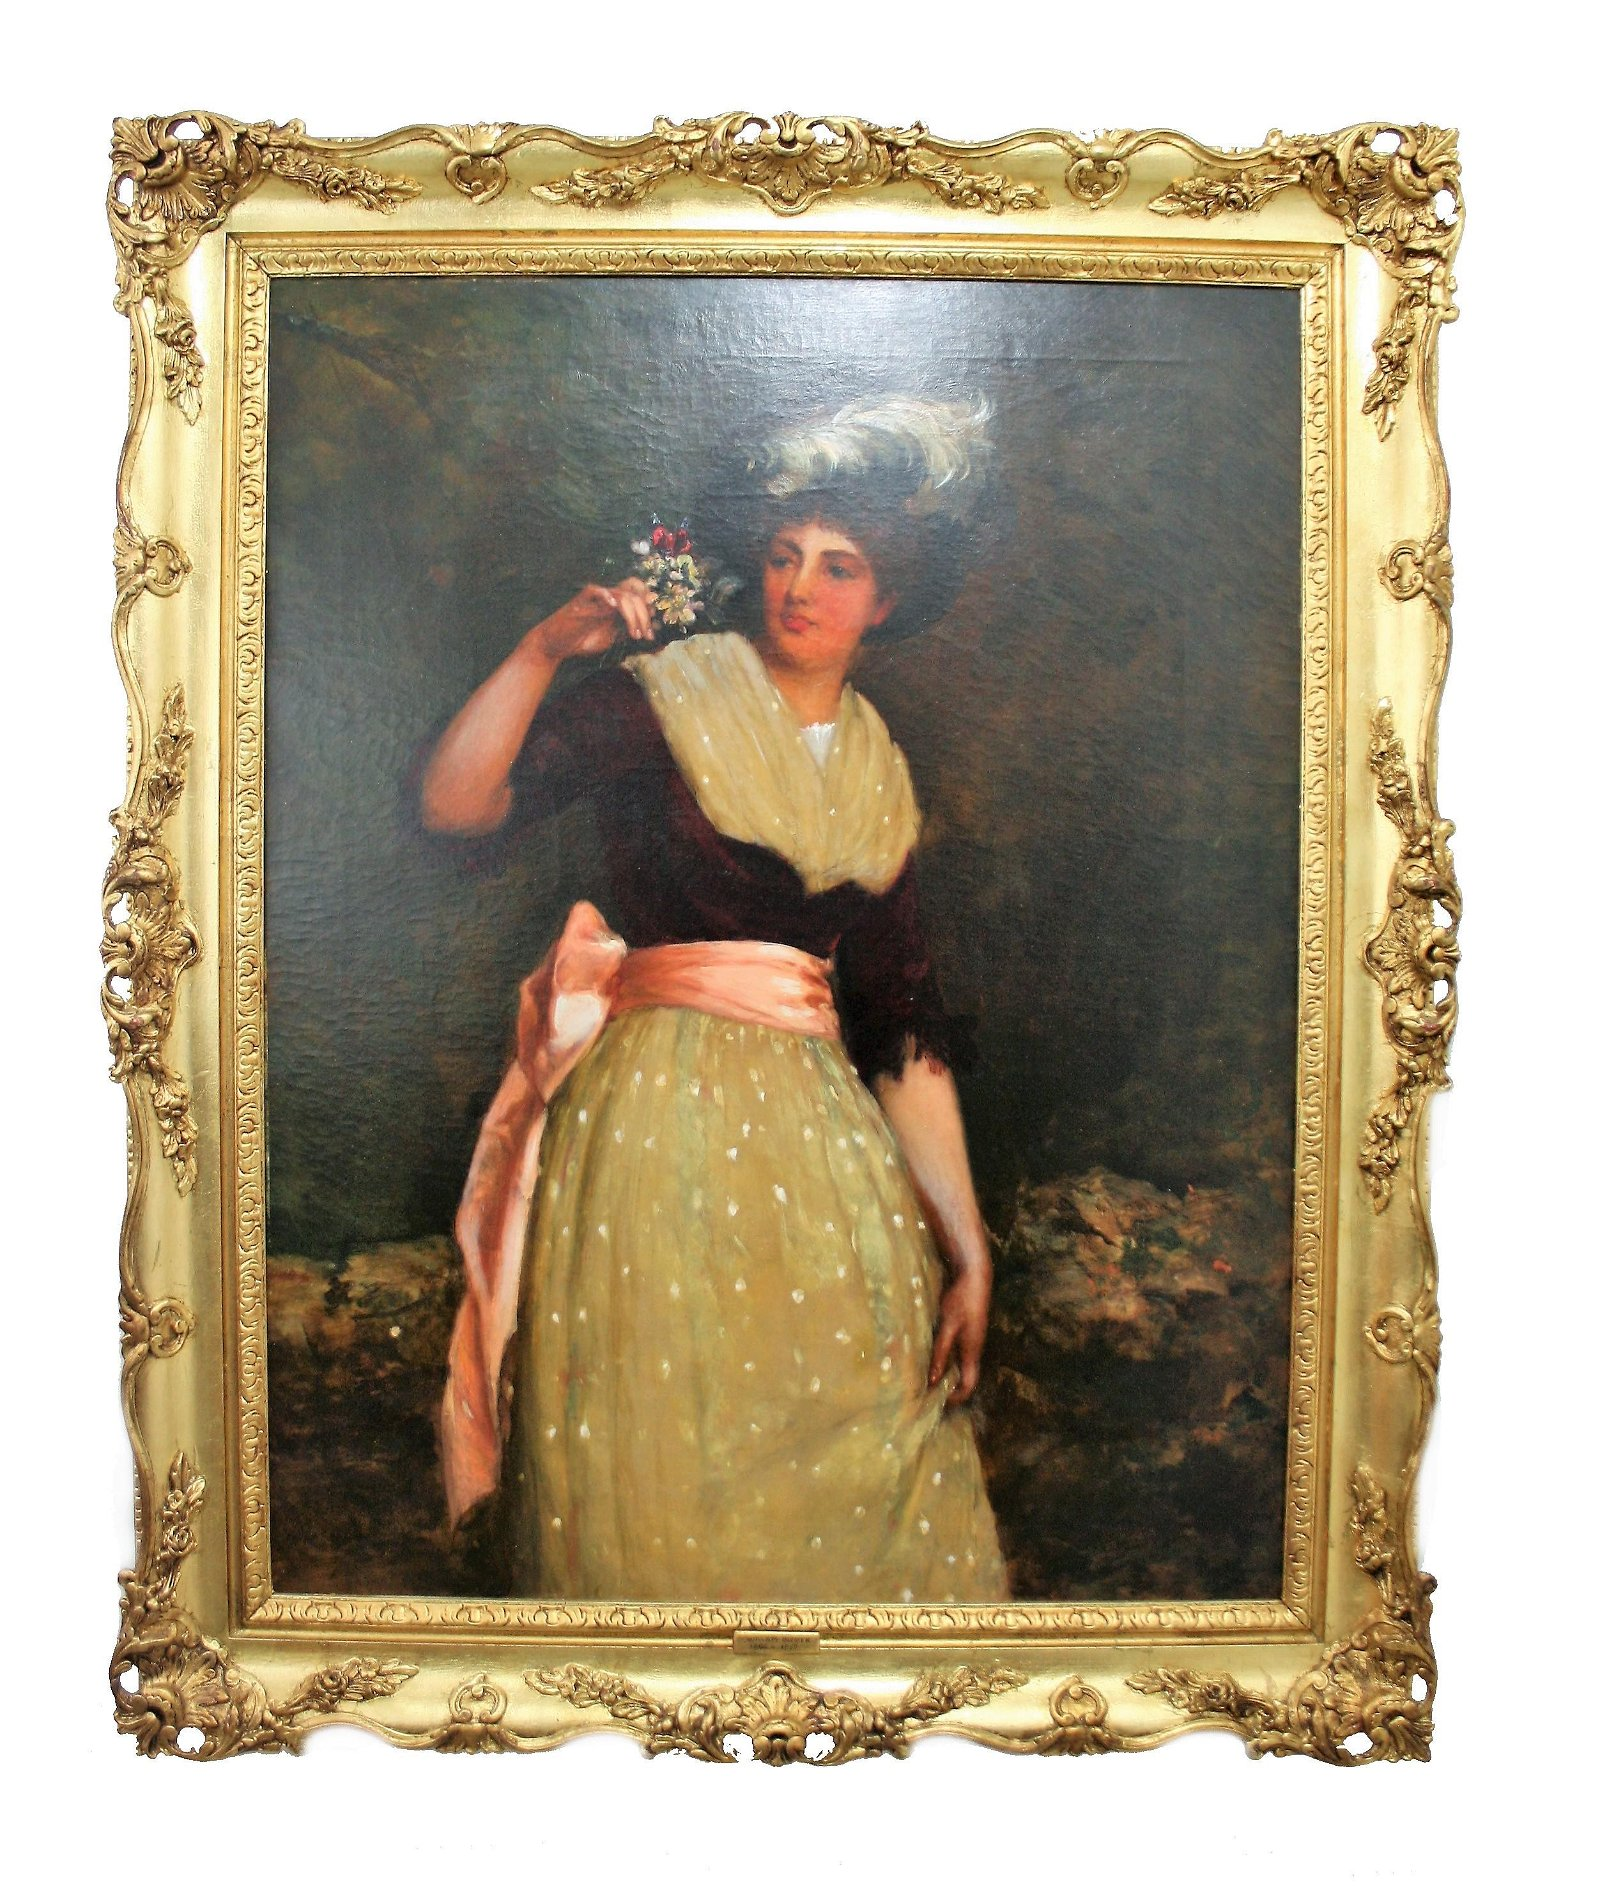 Painting Signed William Oliver (1823 - 1901)